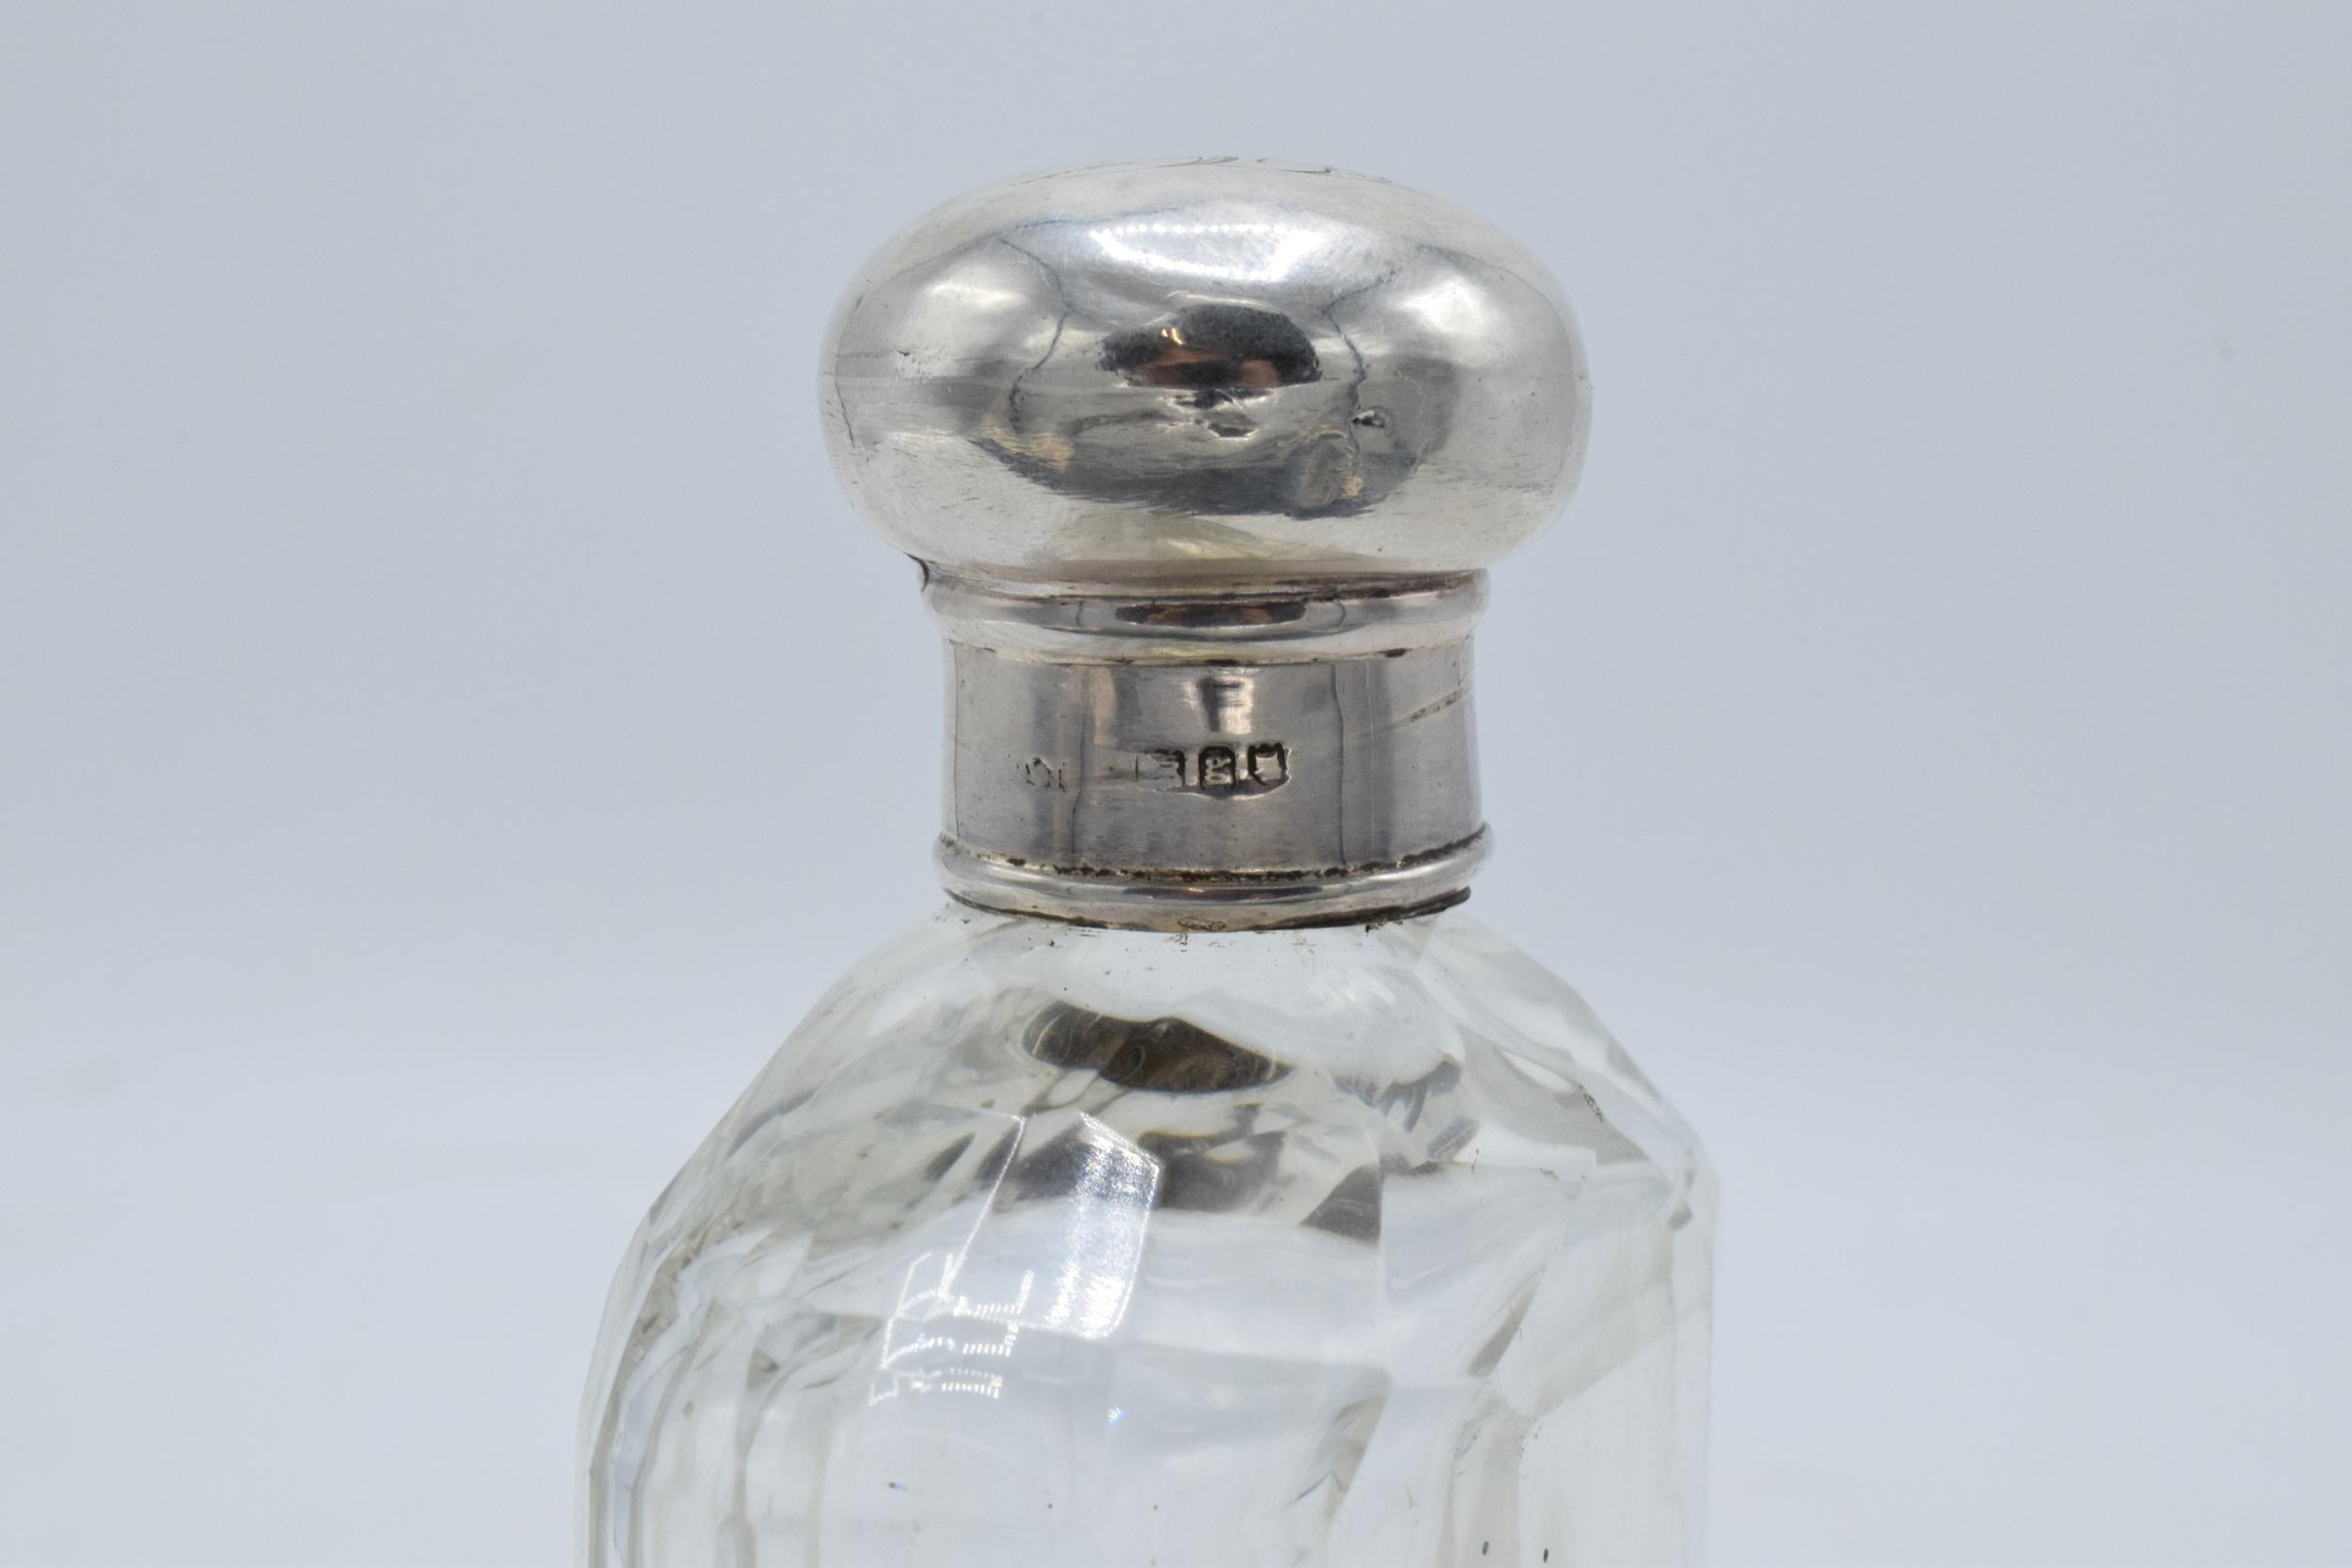 An Edwardian silver and glass hipflask with screw top lid. Hallmarked for London 1902. Hallmarks - Image 3 of 5